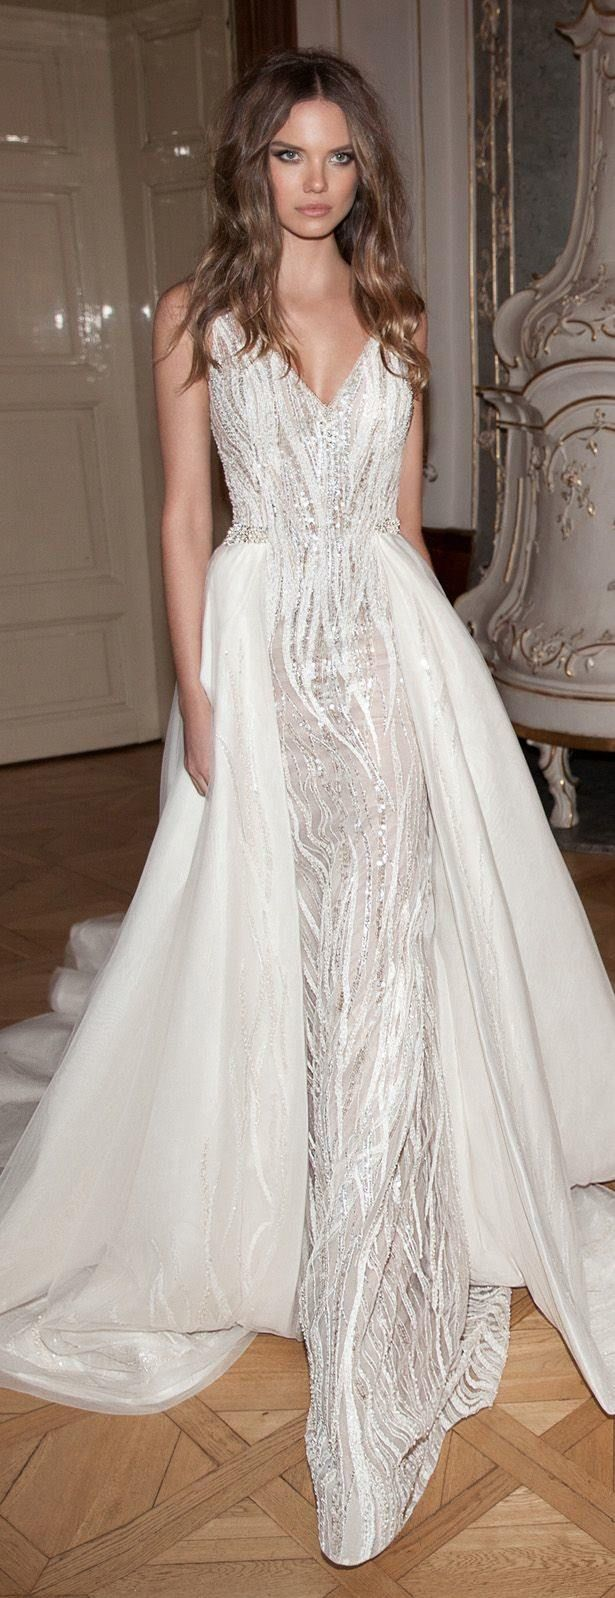 Editor's Picks: 22 Amazing Hand-Beaded Wedding Dresses - MODwedding